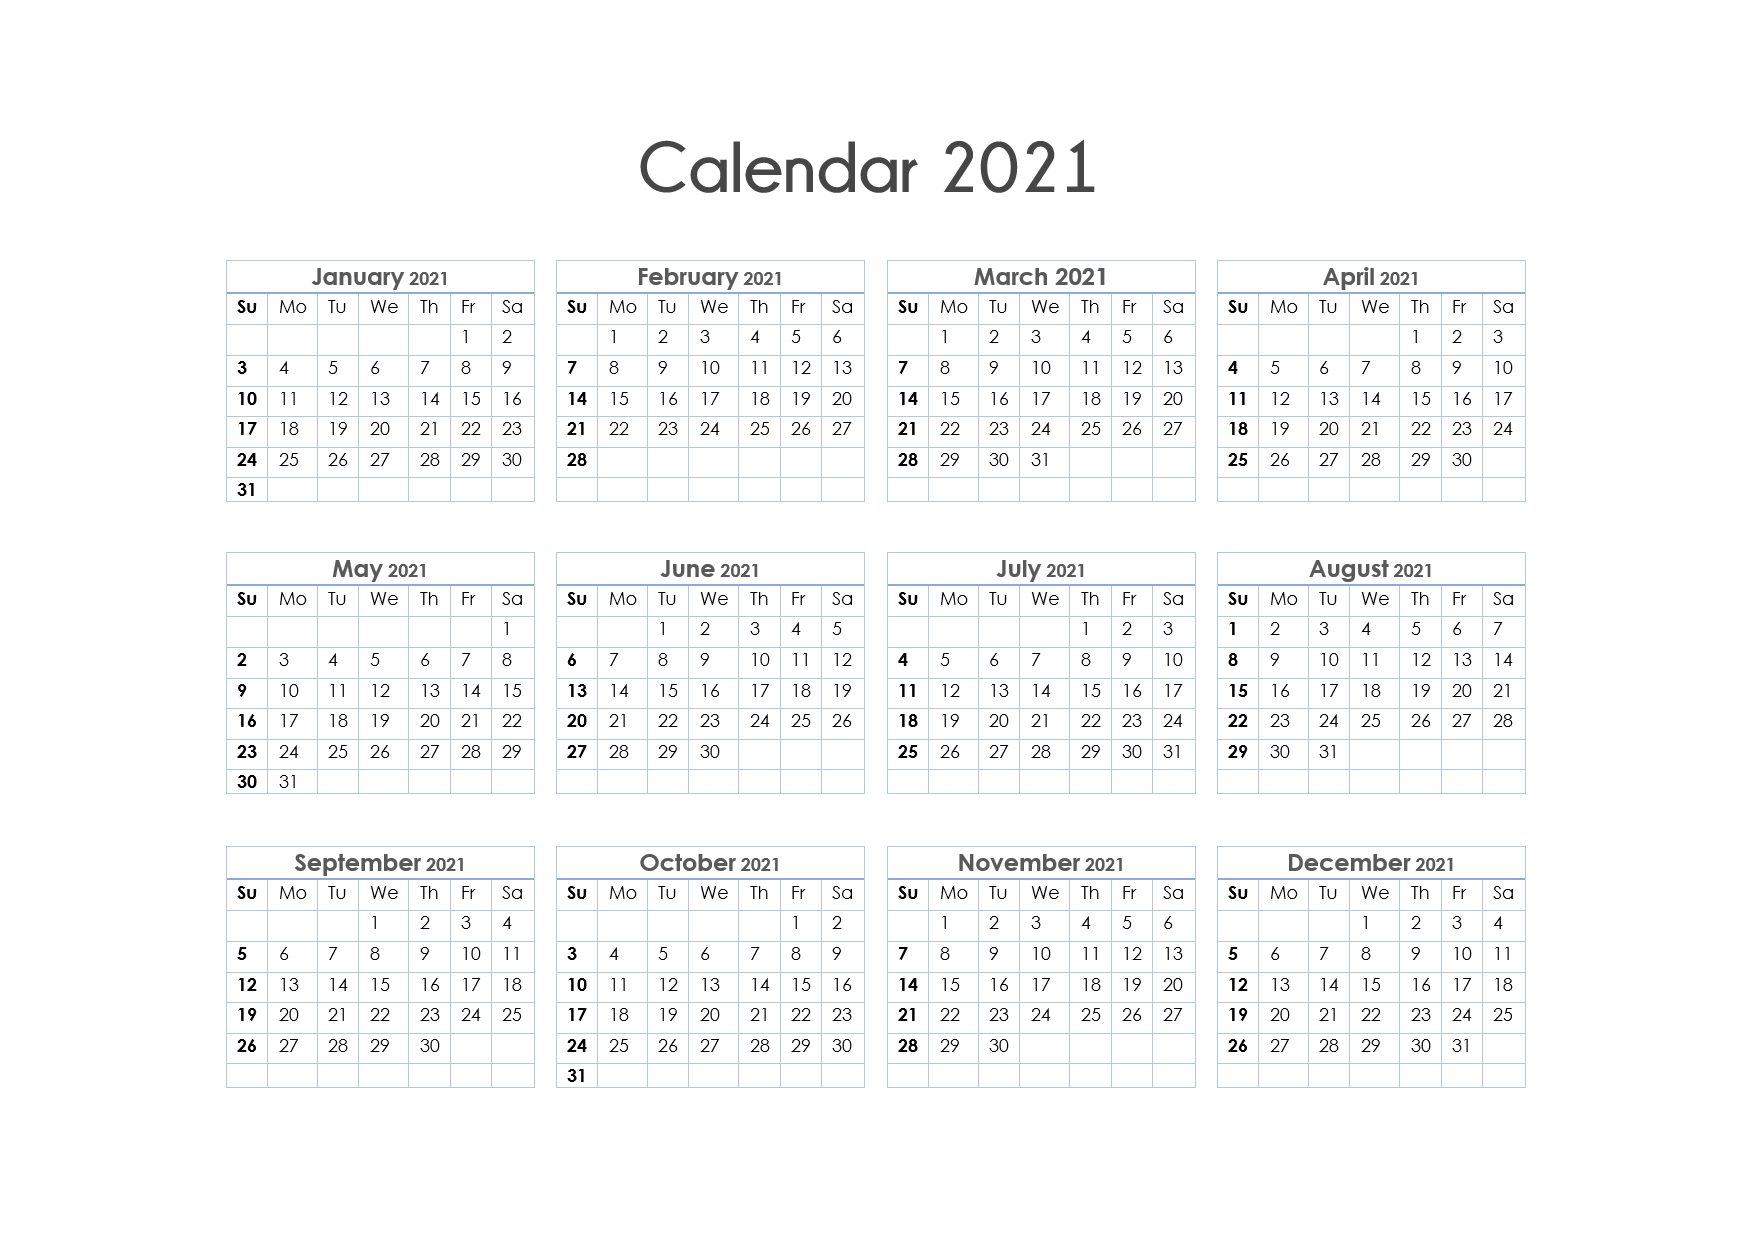 56+ Printable Calendar 2021 One Page, Us 2021 Calendar intended for Fill In Yearly Calendar 2021